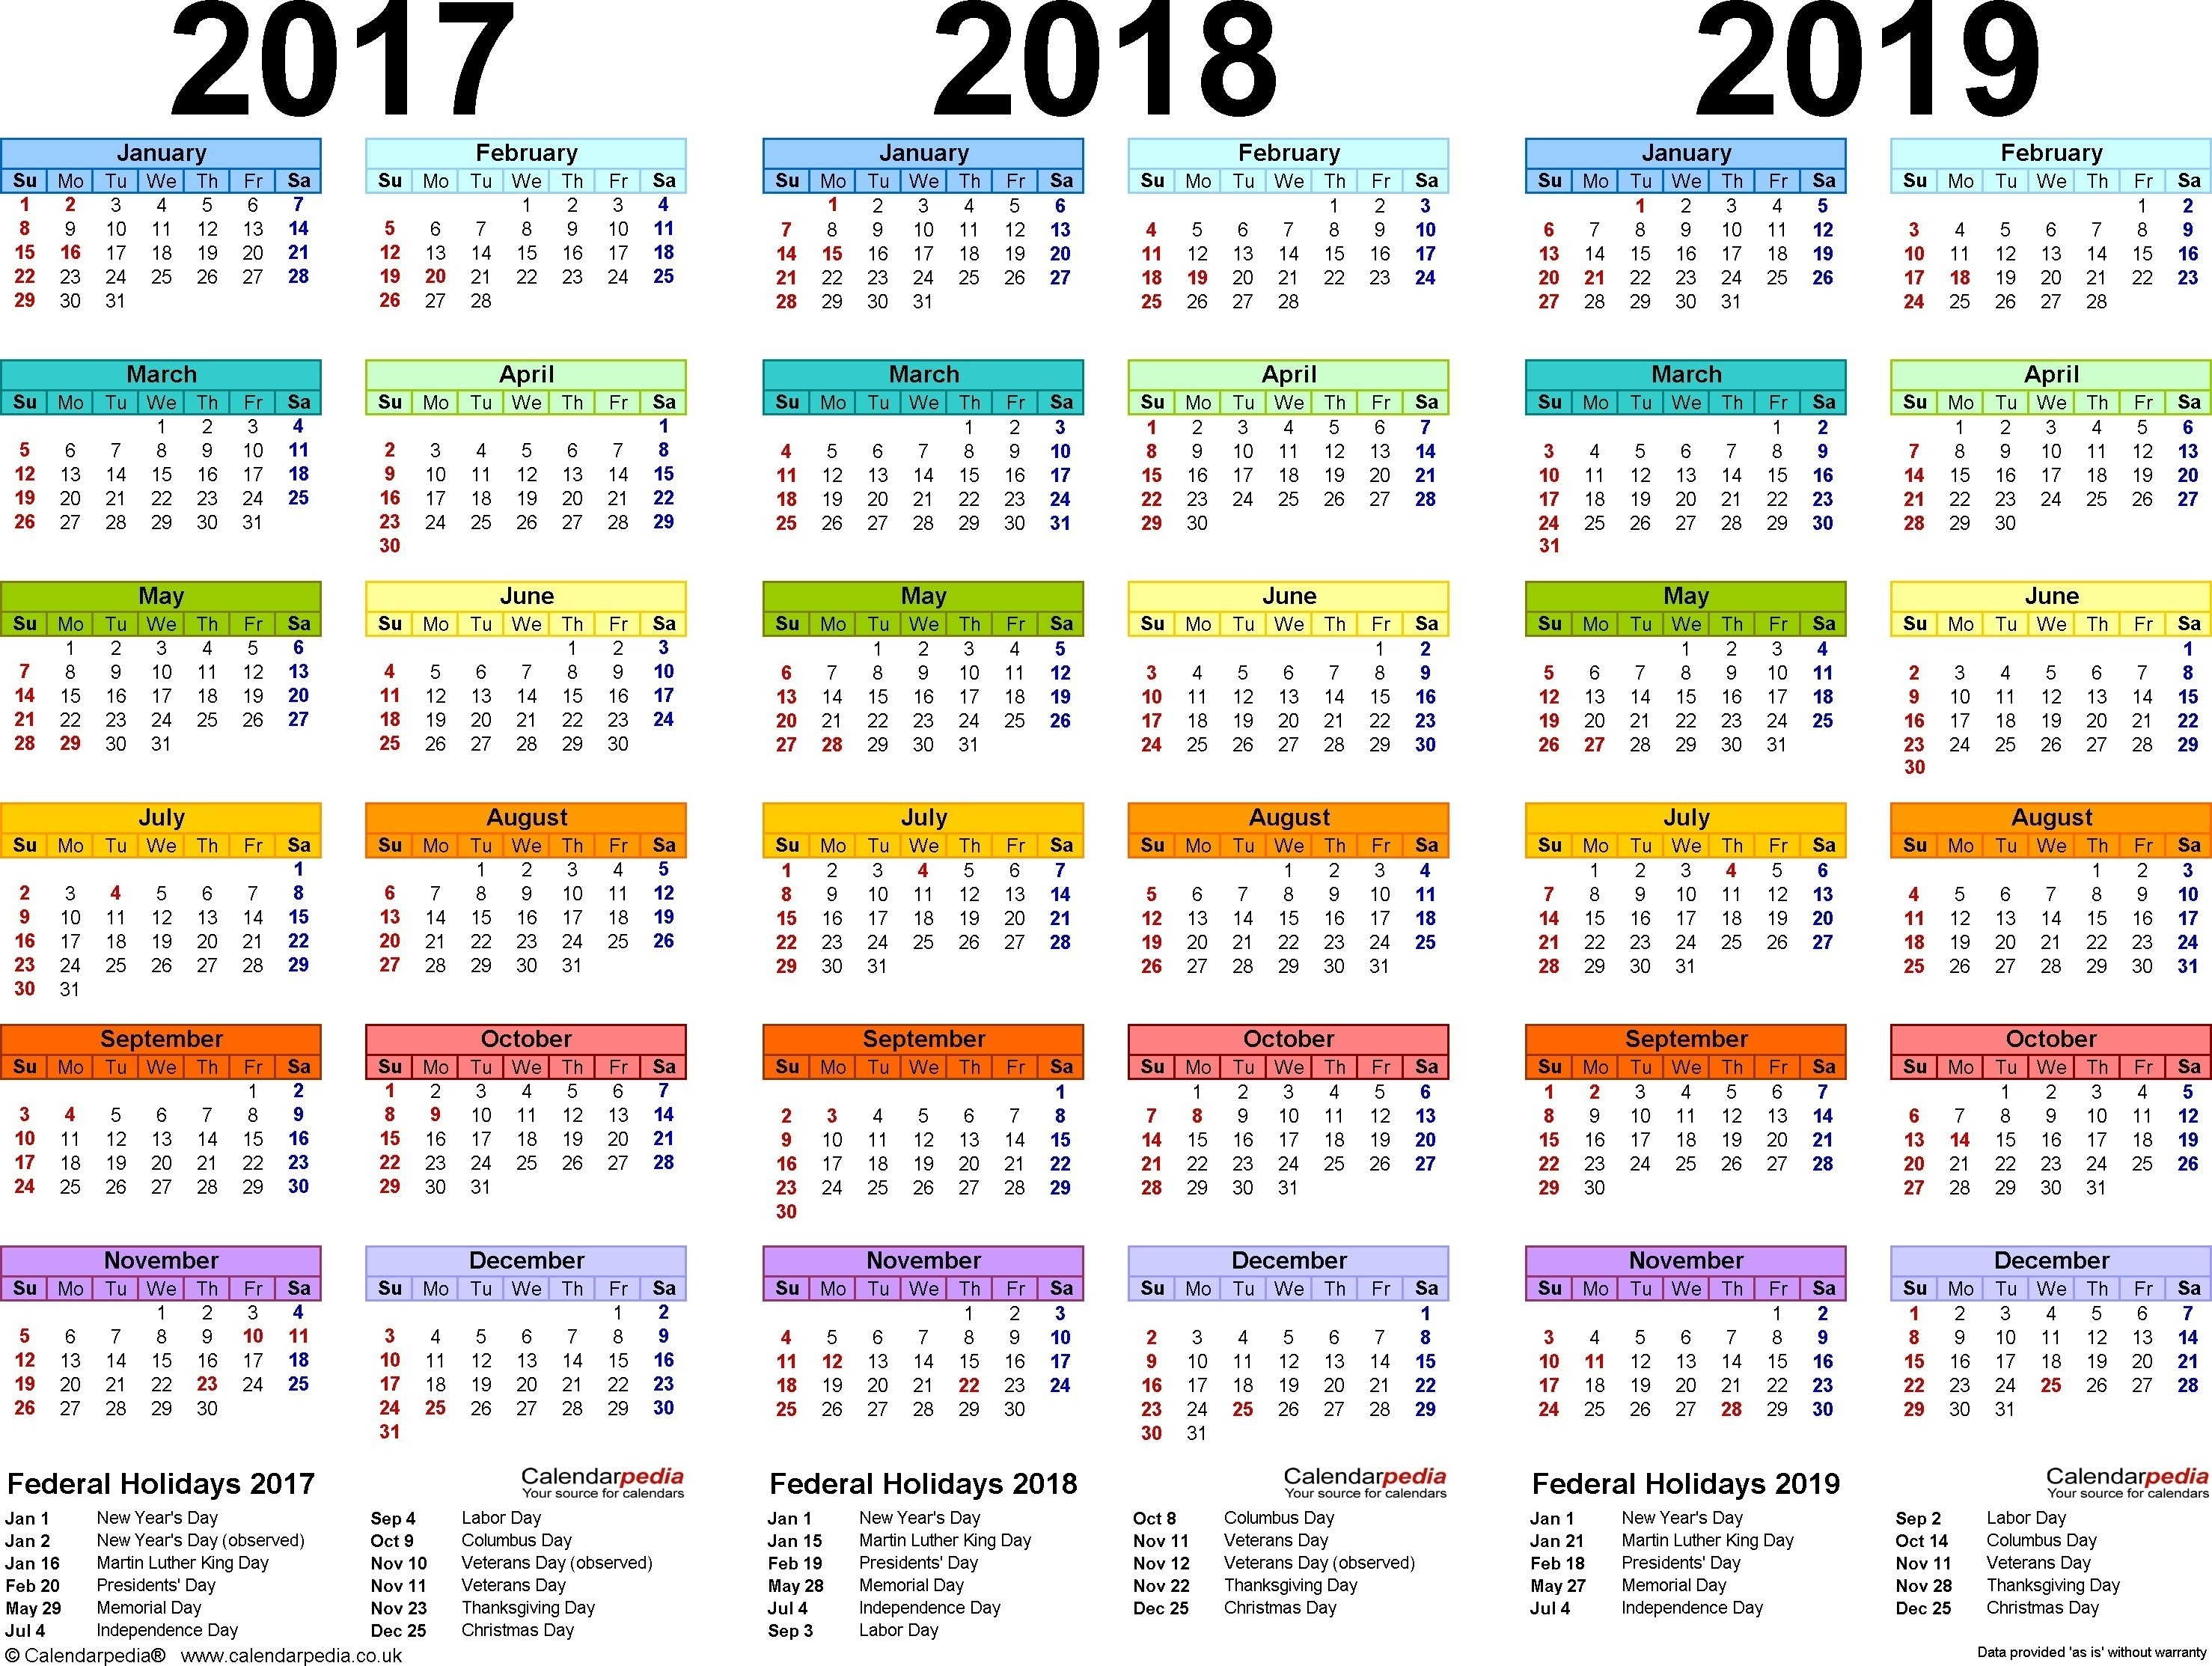 Depo Provera Calendar 2019 Printable Download For Free  Depo Provera Chart 2020